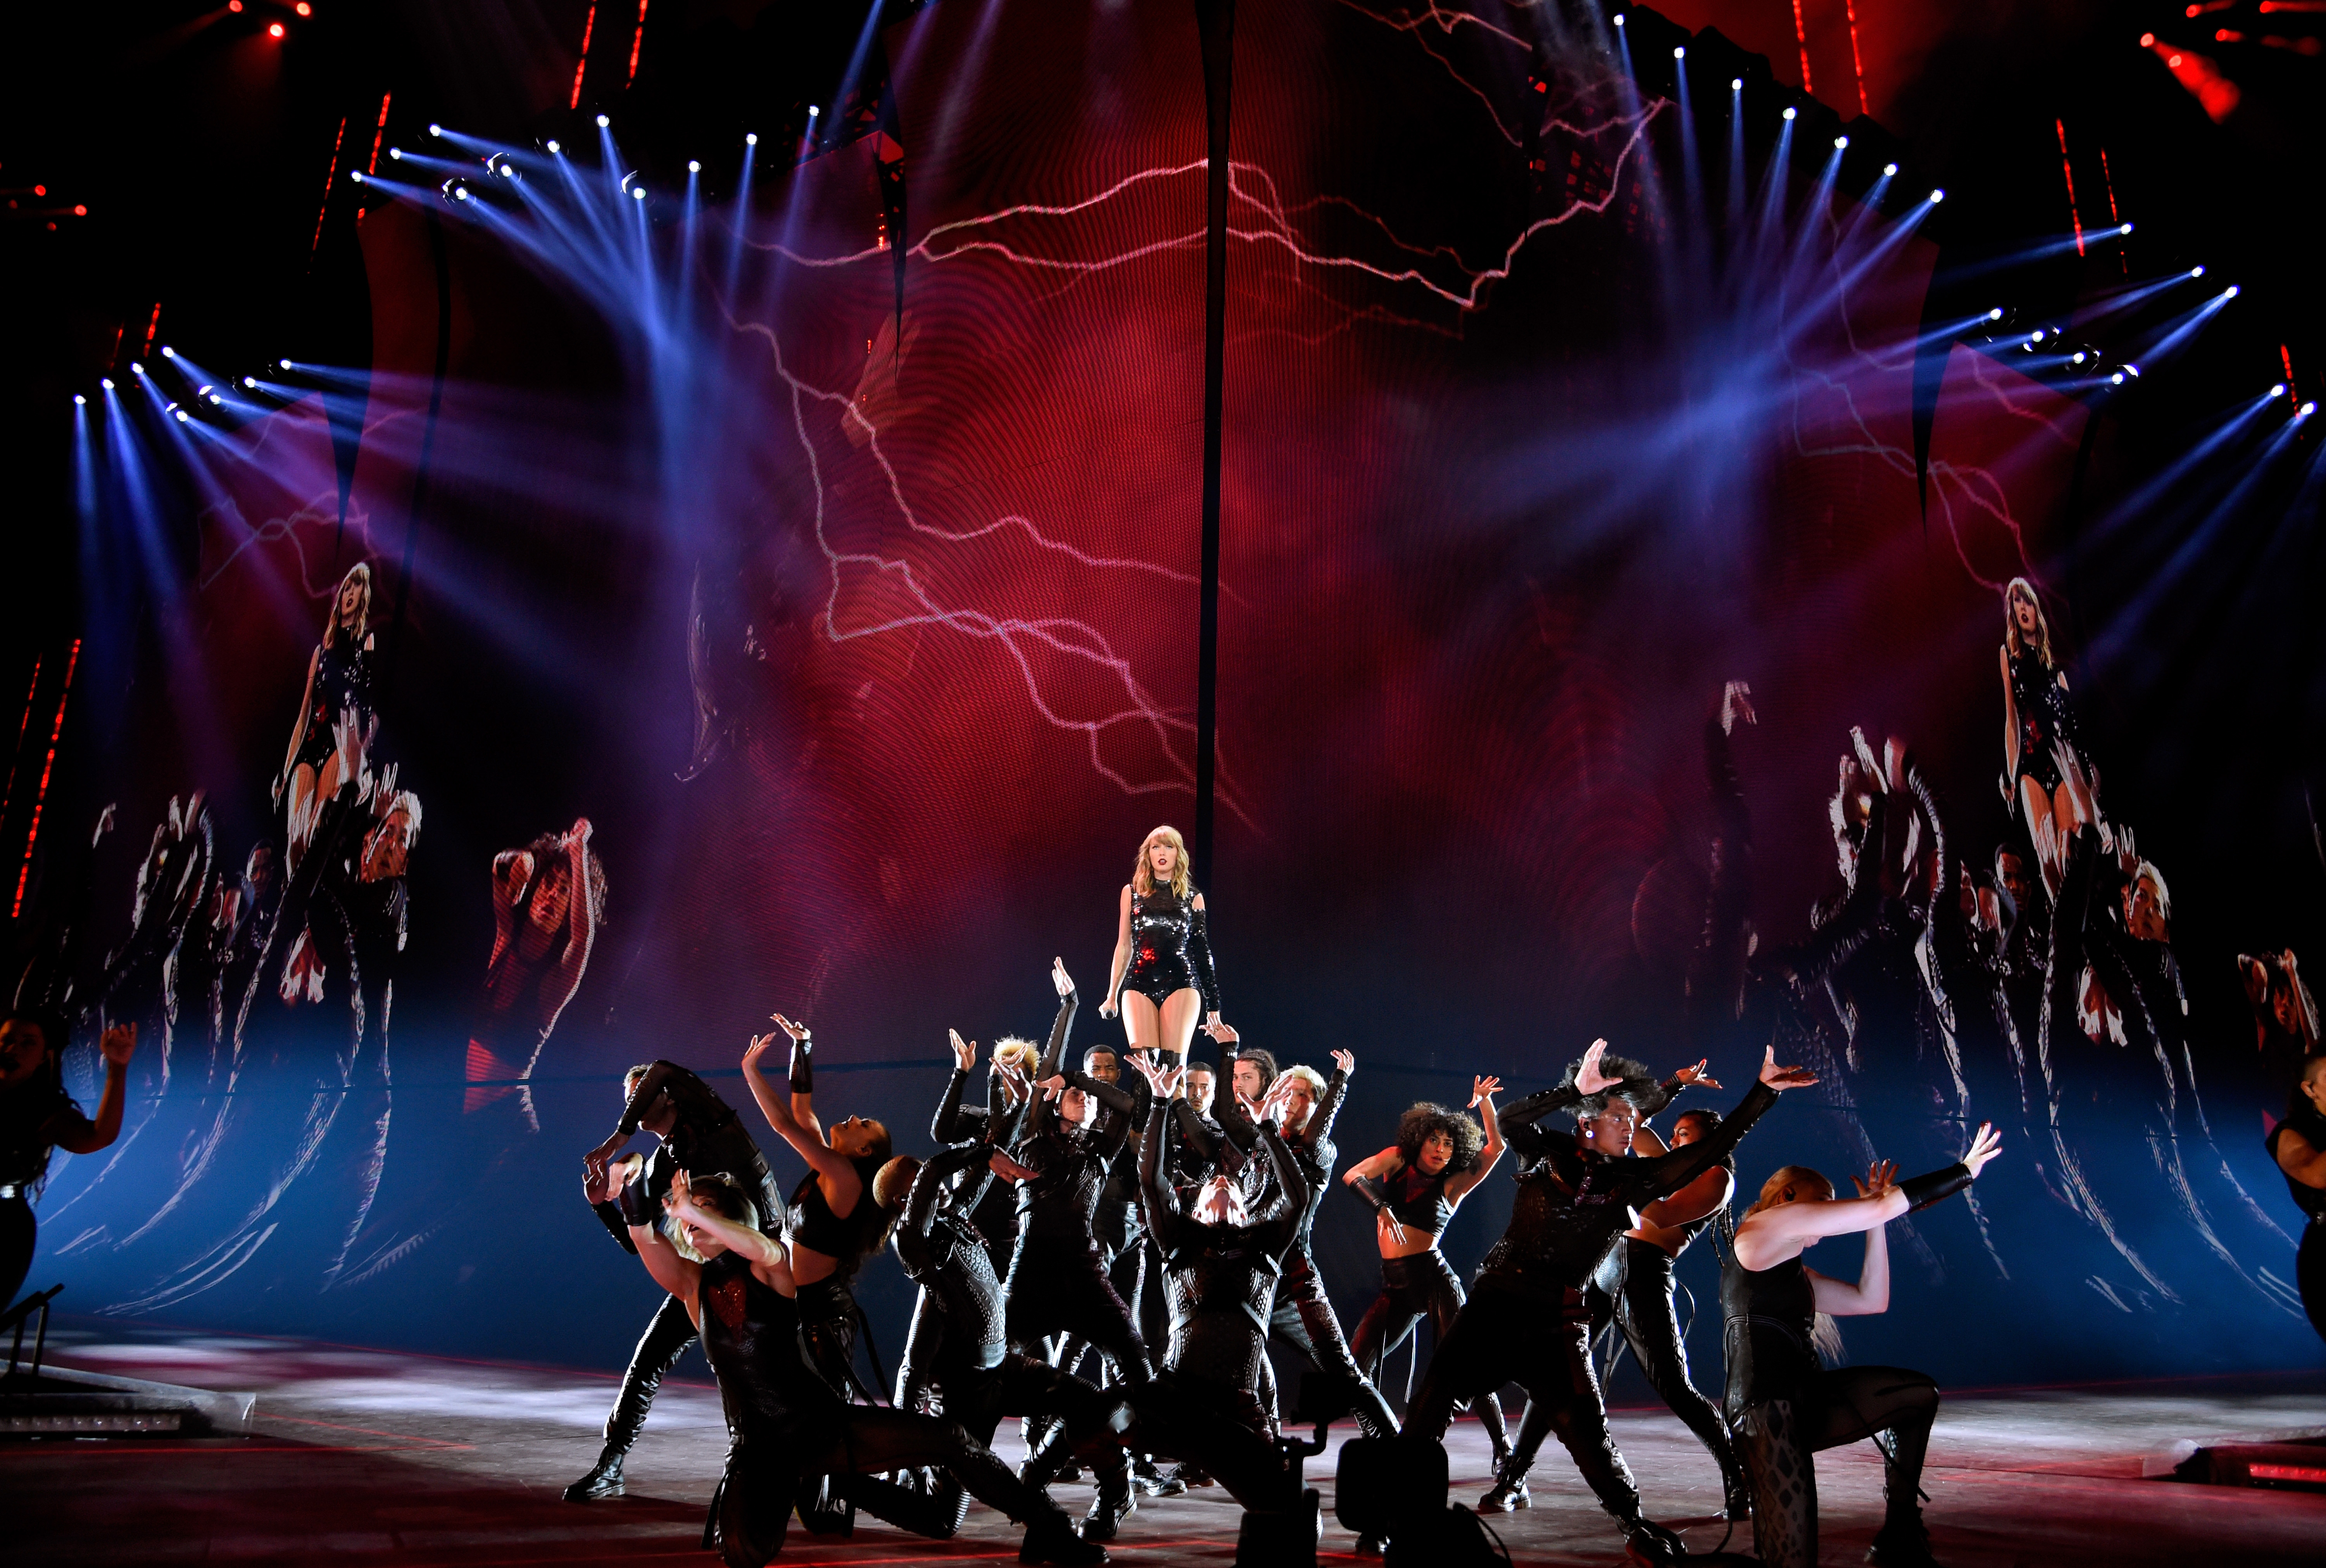 Taylor Swift Reputation Tour Rob Sheffield Reviews Rolling Stone